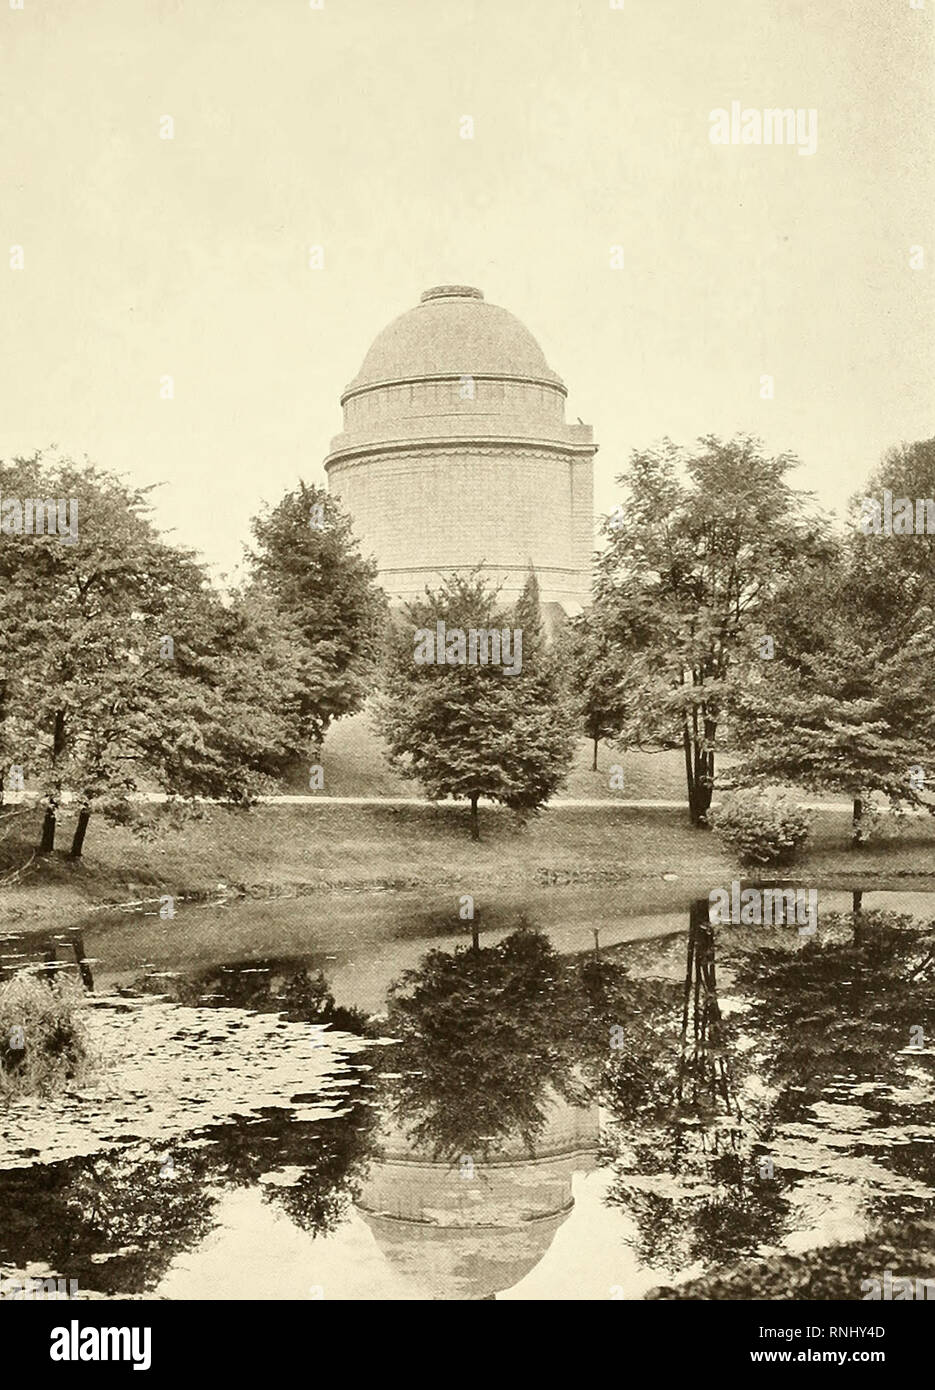 A View of the Dome from the West - The Tomb of President William McKinley, circa 1907 - Stock Image